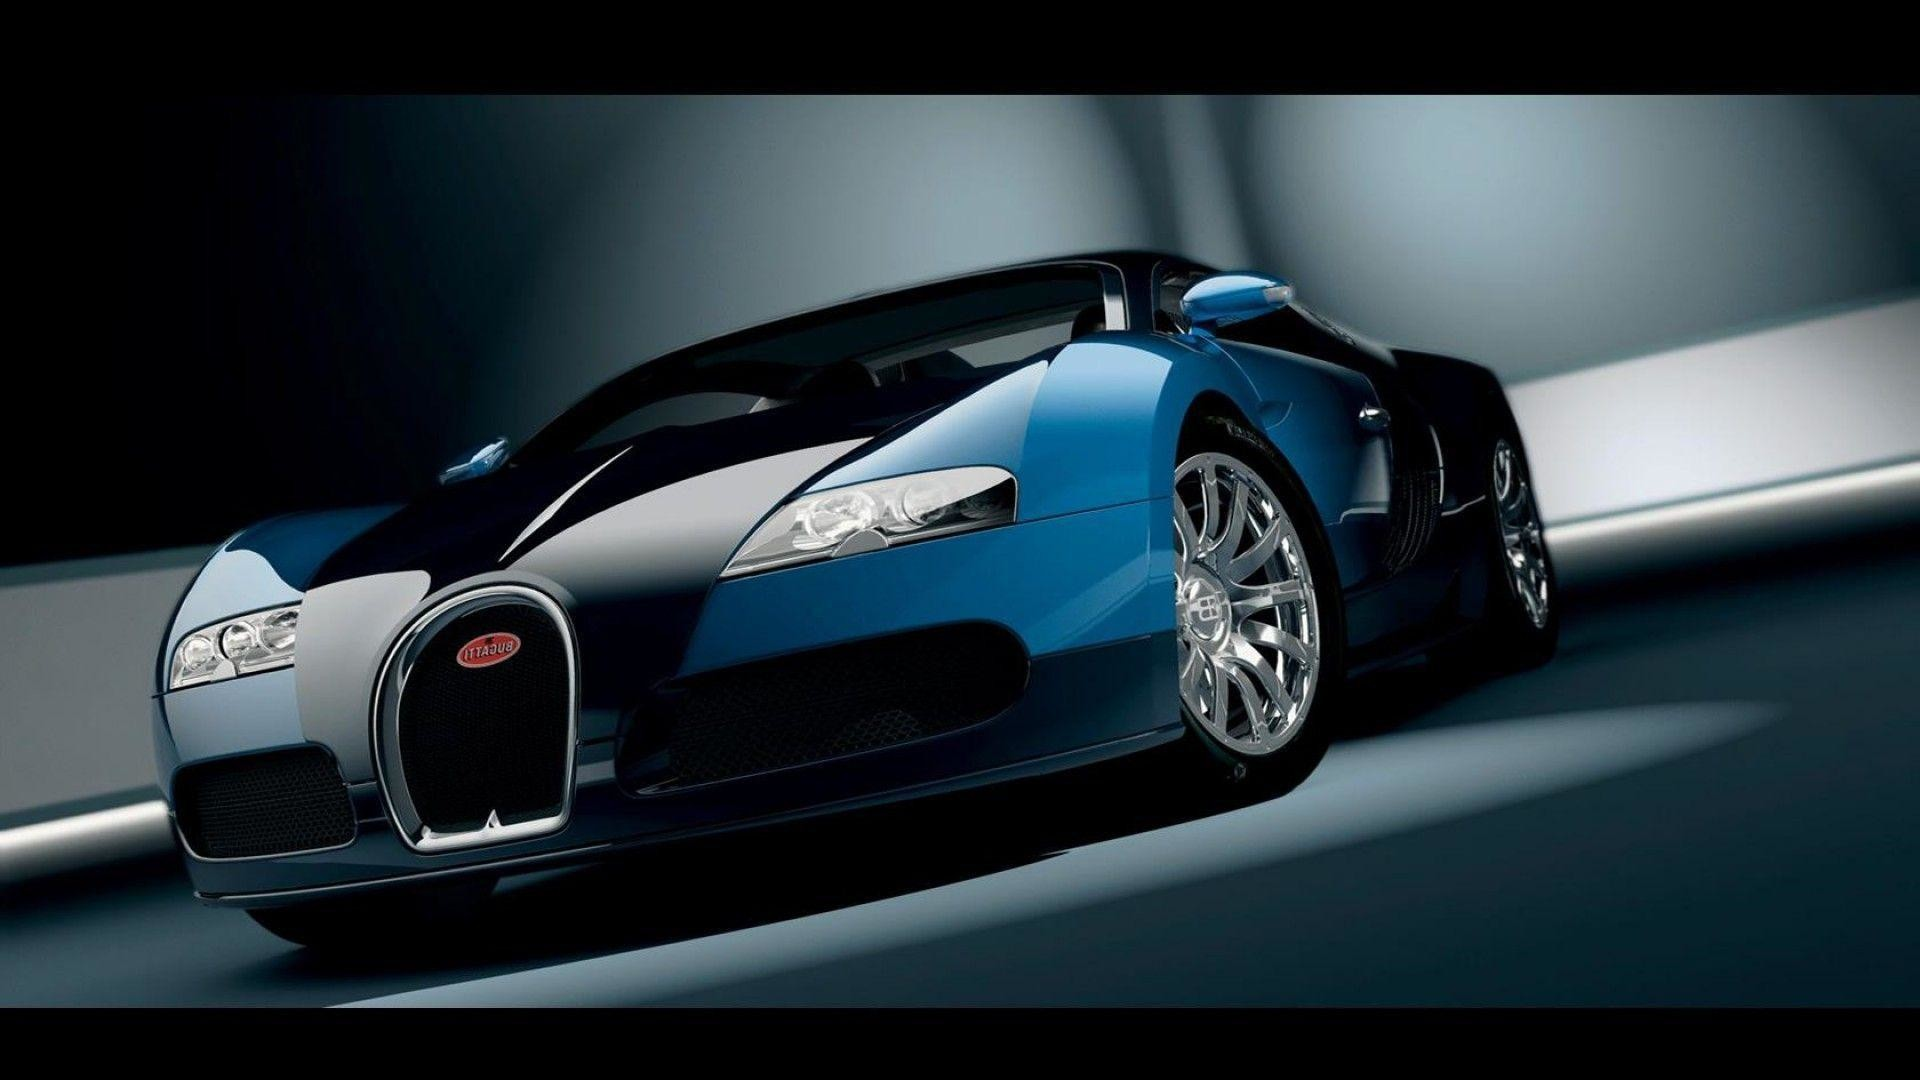 Bugatti Cars Wallpapers Hd: Bugatti Veyron HD Wallpaper ·①